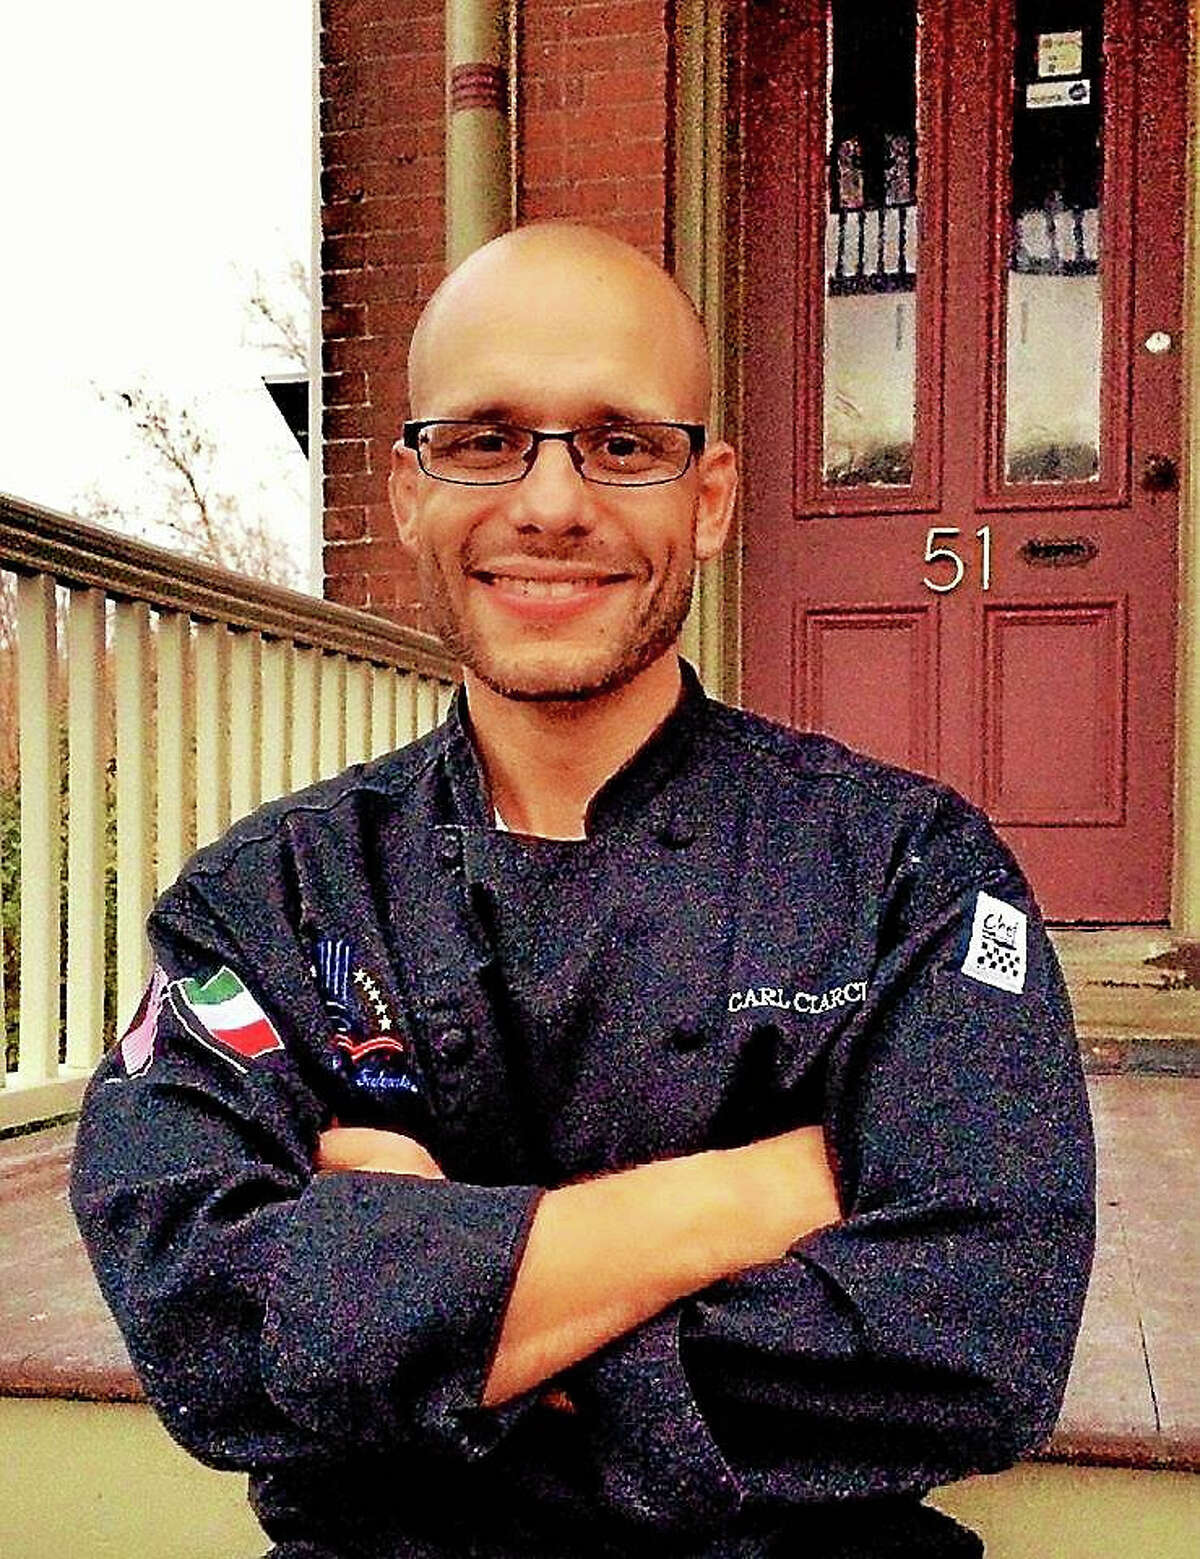 Chef Carl Ciarcia III is transforming a portion of the former jailhouse which faces Warwick Street into a restaurant with a Victorian-style interior and Italian-inspired dishes from many regions. Future plans include renovations to the basement, where a wine bar will be featured in a space called The Cellar, which will offer wines, cheeses and a charcuterie.